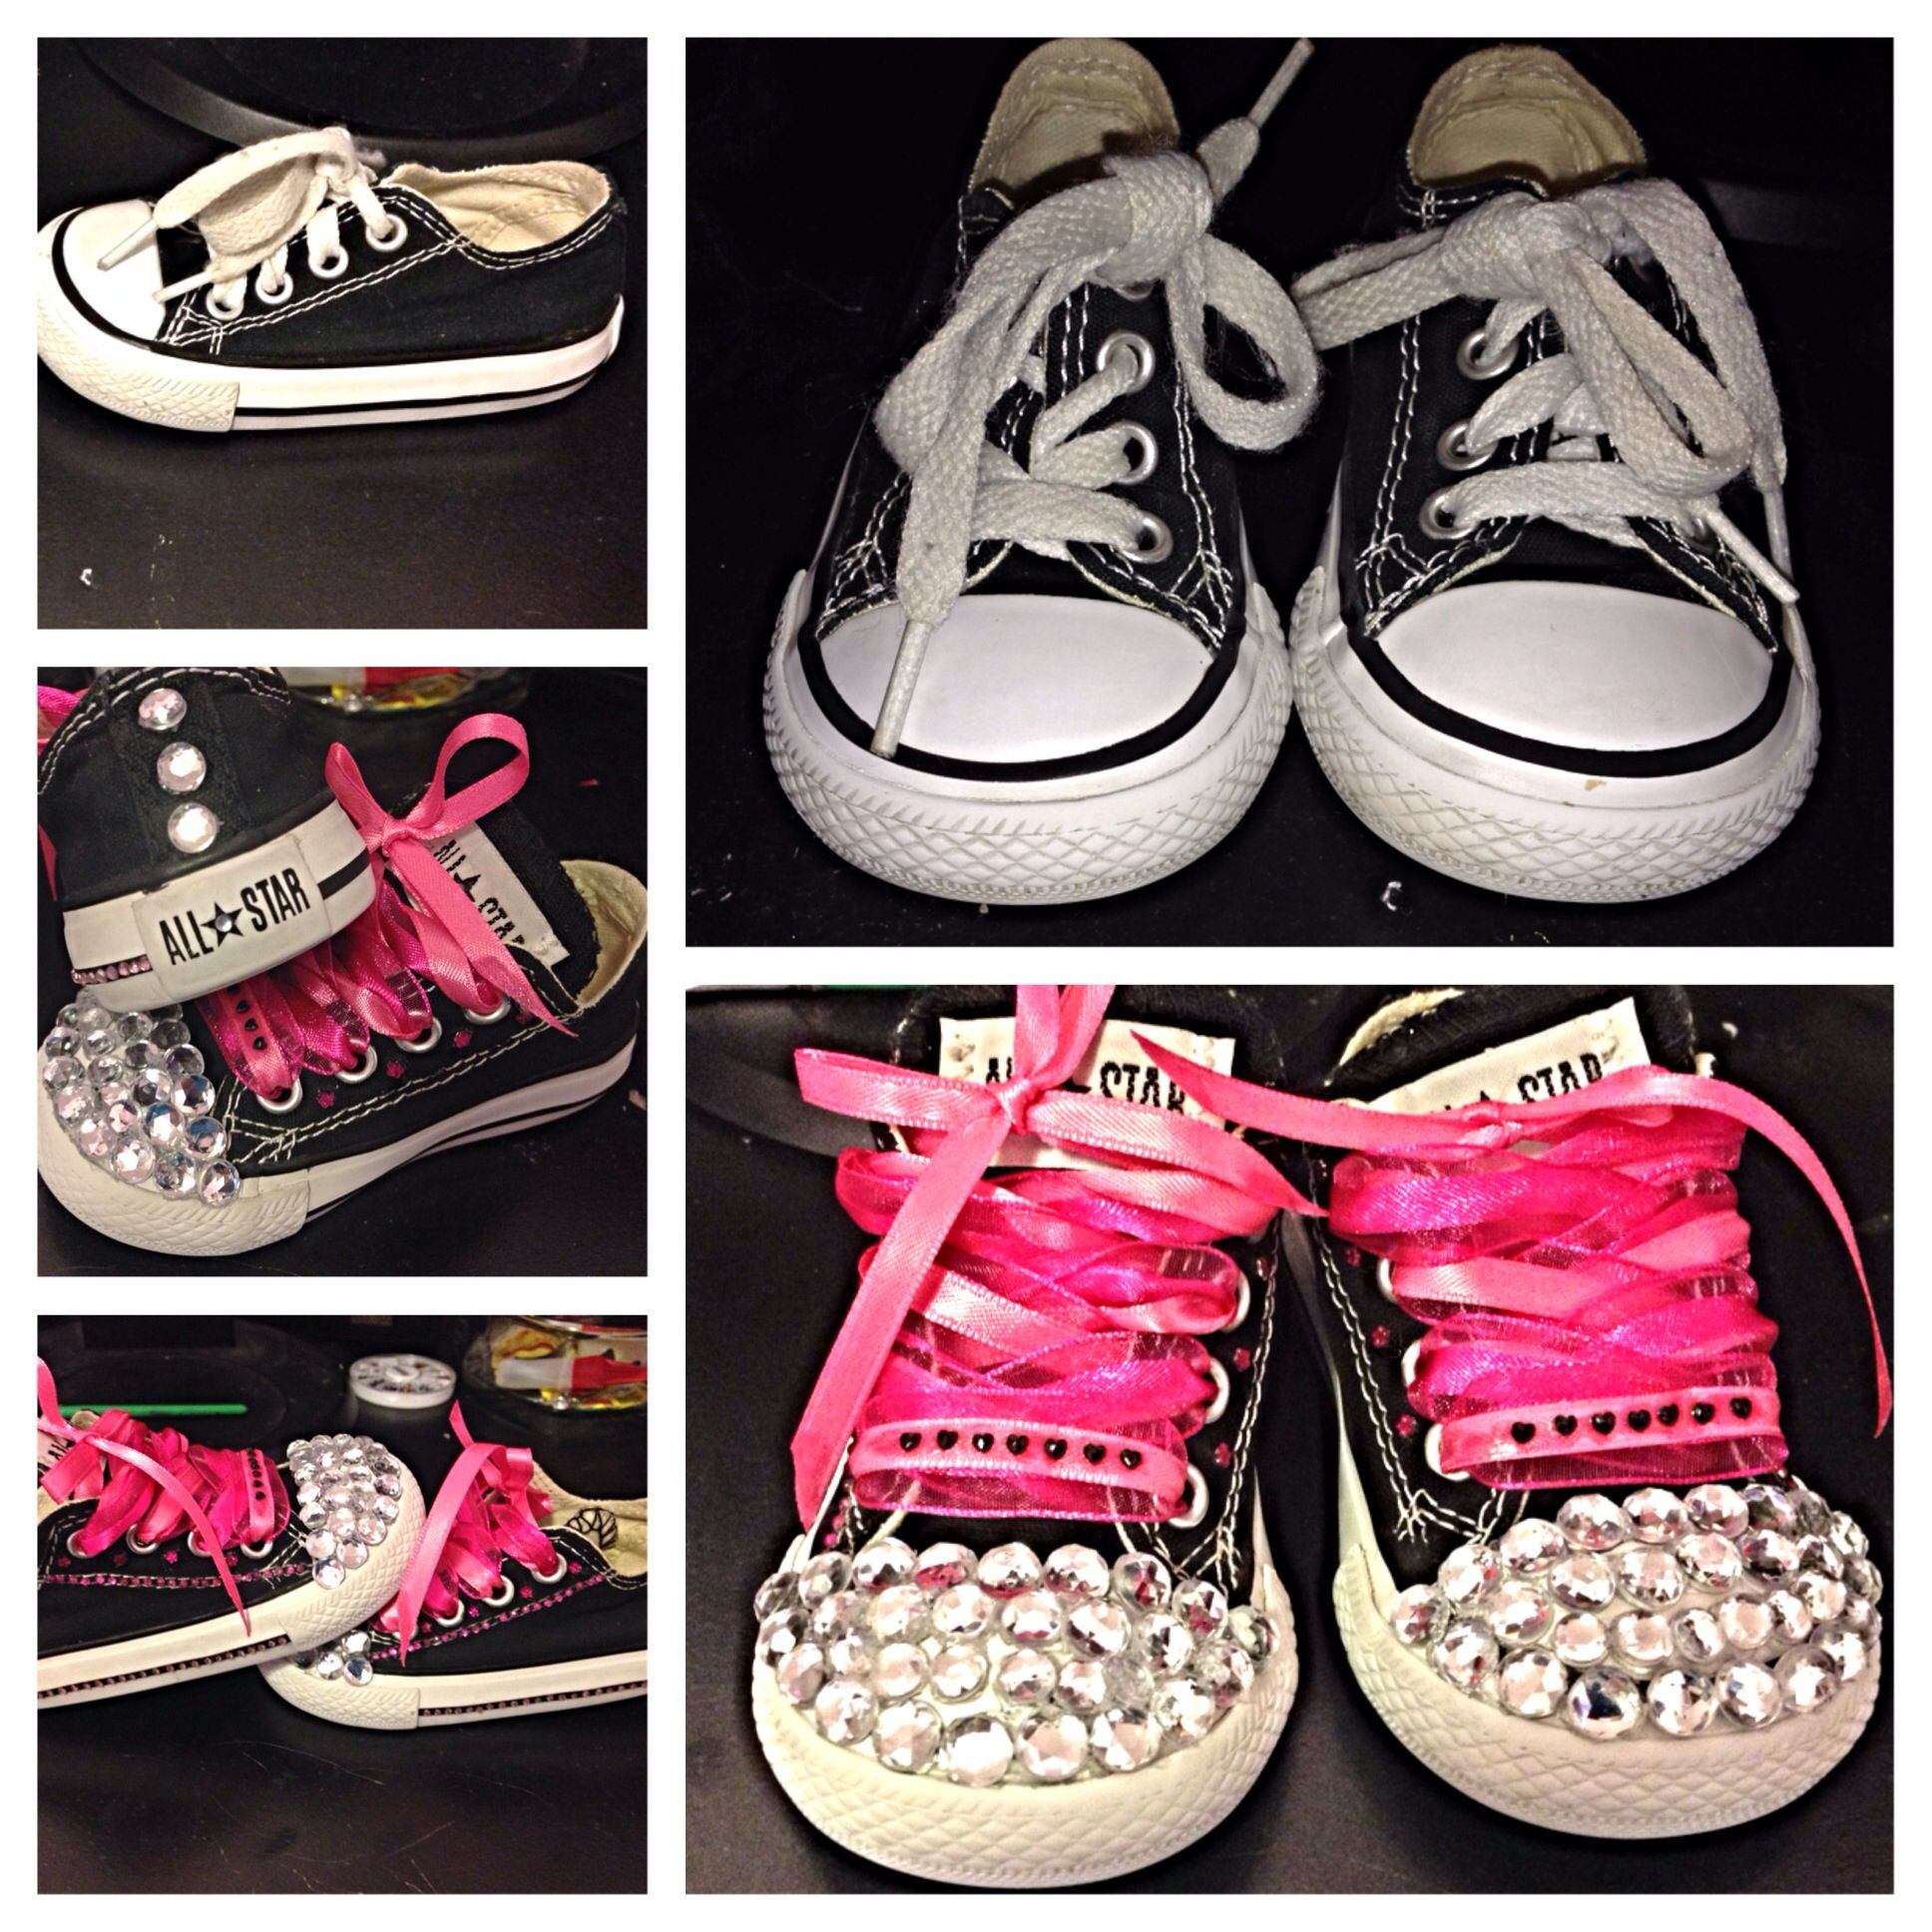 ceb6a0449919 Thrift store  7 Baby girl shoes chucks rhinestones bedazzle sparkle all  star converse black pink DIY